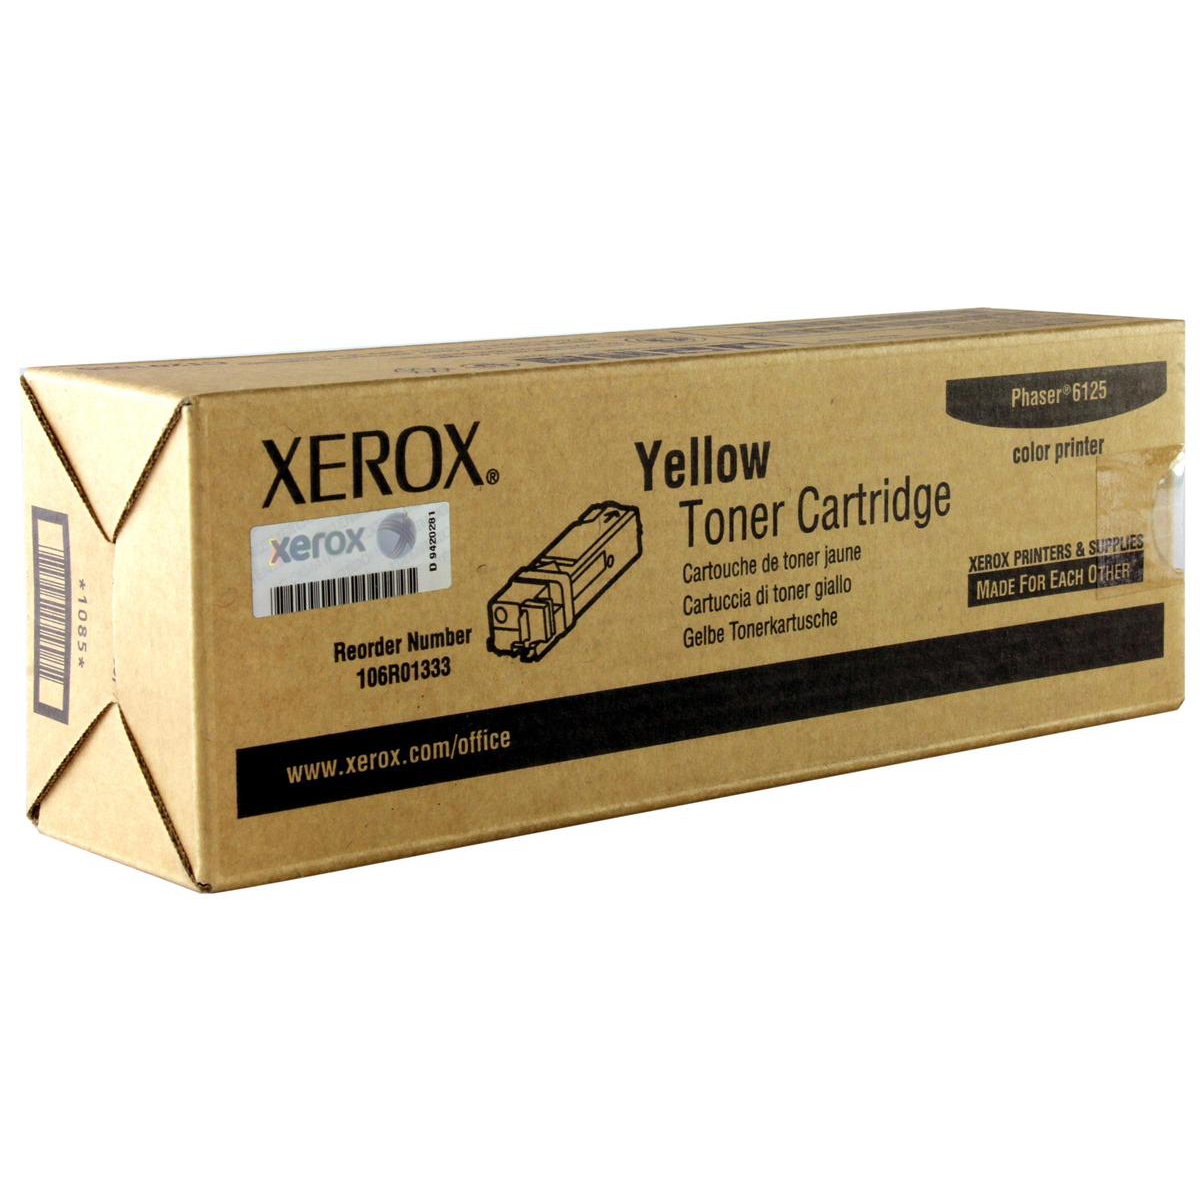 Xerox Phaser 6125 Laser Toner Cartridge Page Life 1000pp Yellow Ref 106R01333